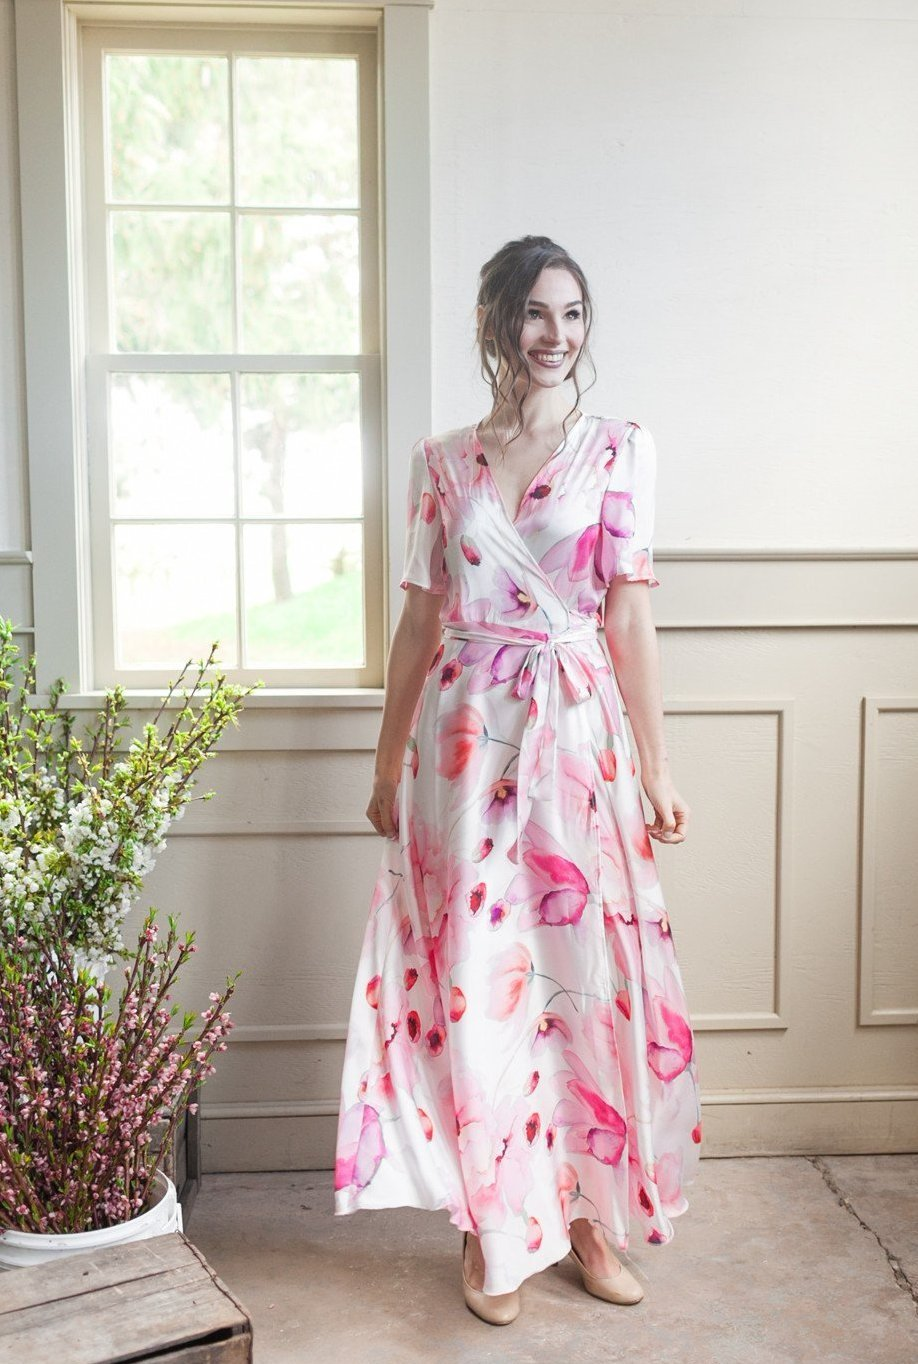 Custom flowy wrap dress for bridesmaids in Toronto, blush floral print custom bridesmaid dress